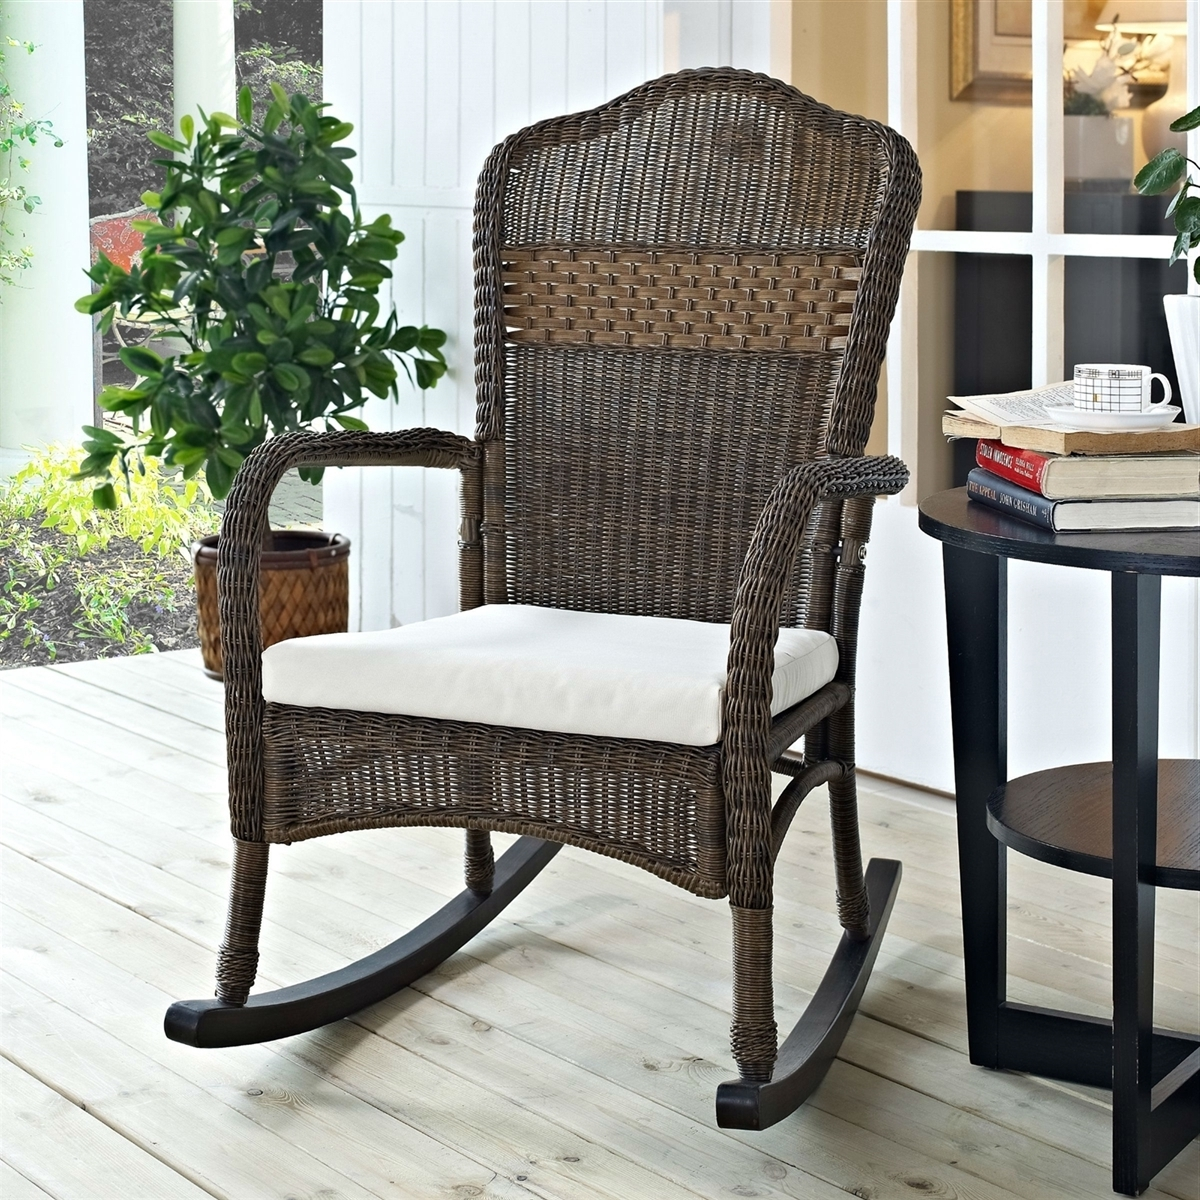 Widely Used Wicker Patio Furniture Rocking Chair Mocha With Beige Cushion Within Patio Rocking Chairs With Cushions (View 15 of 15)